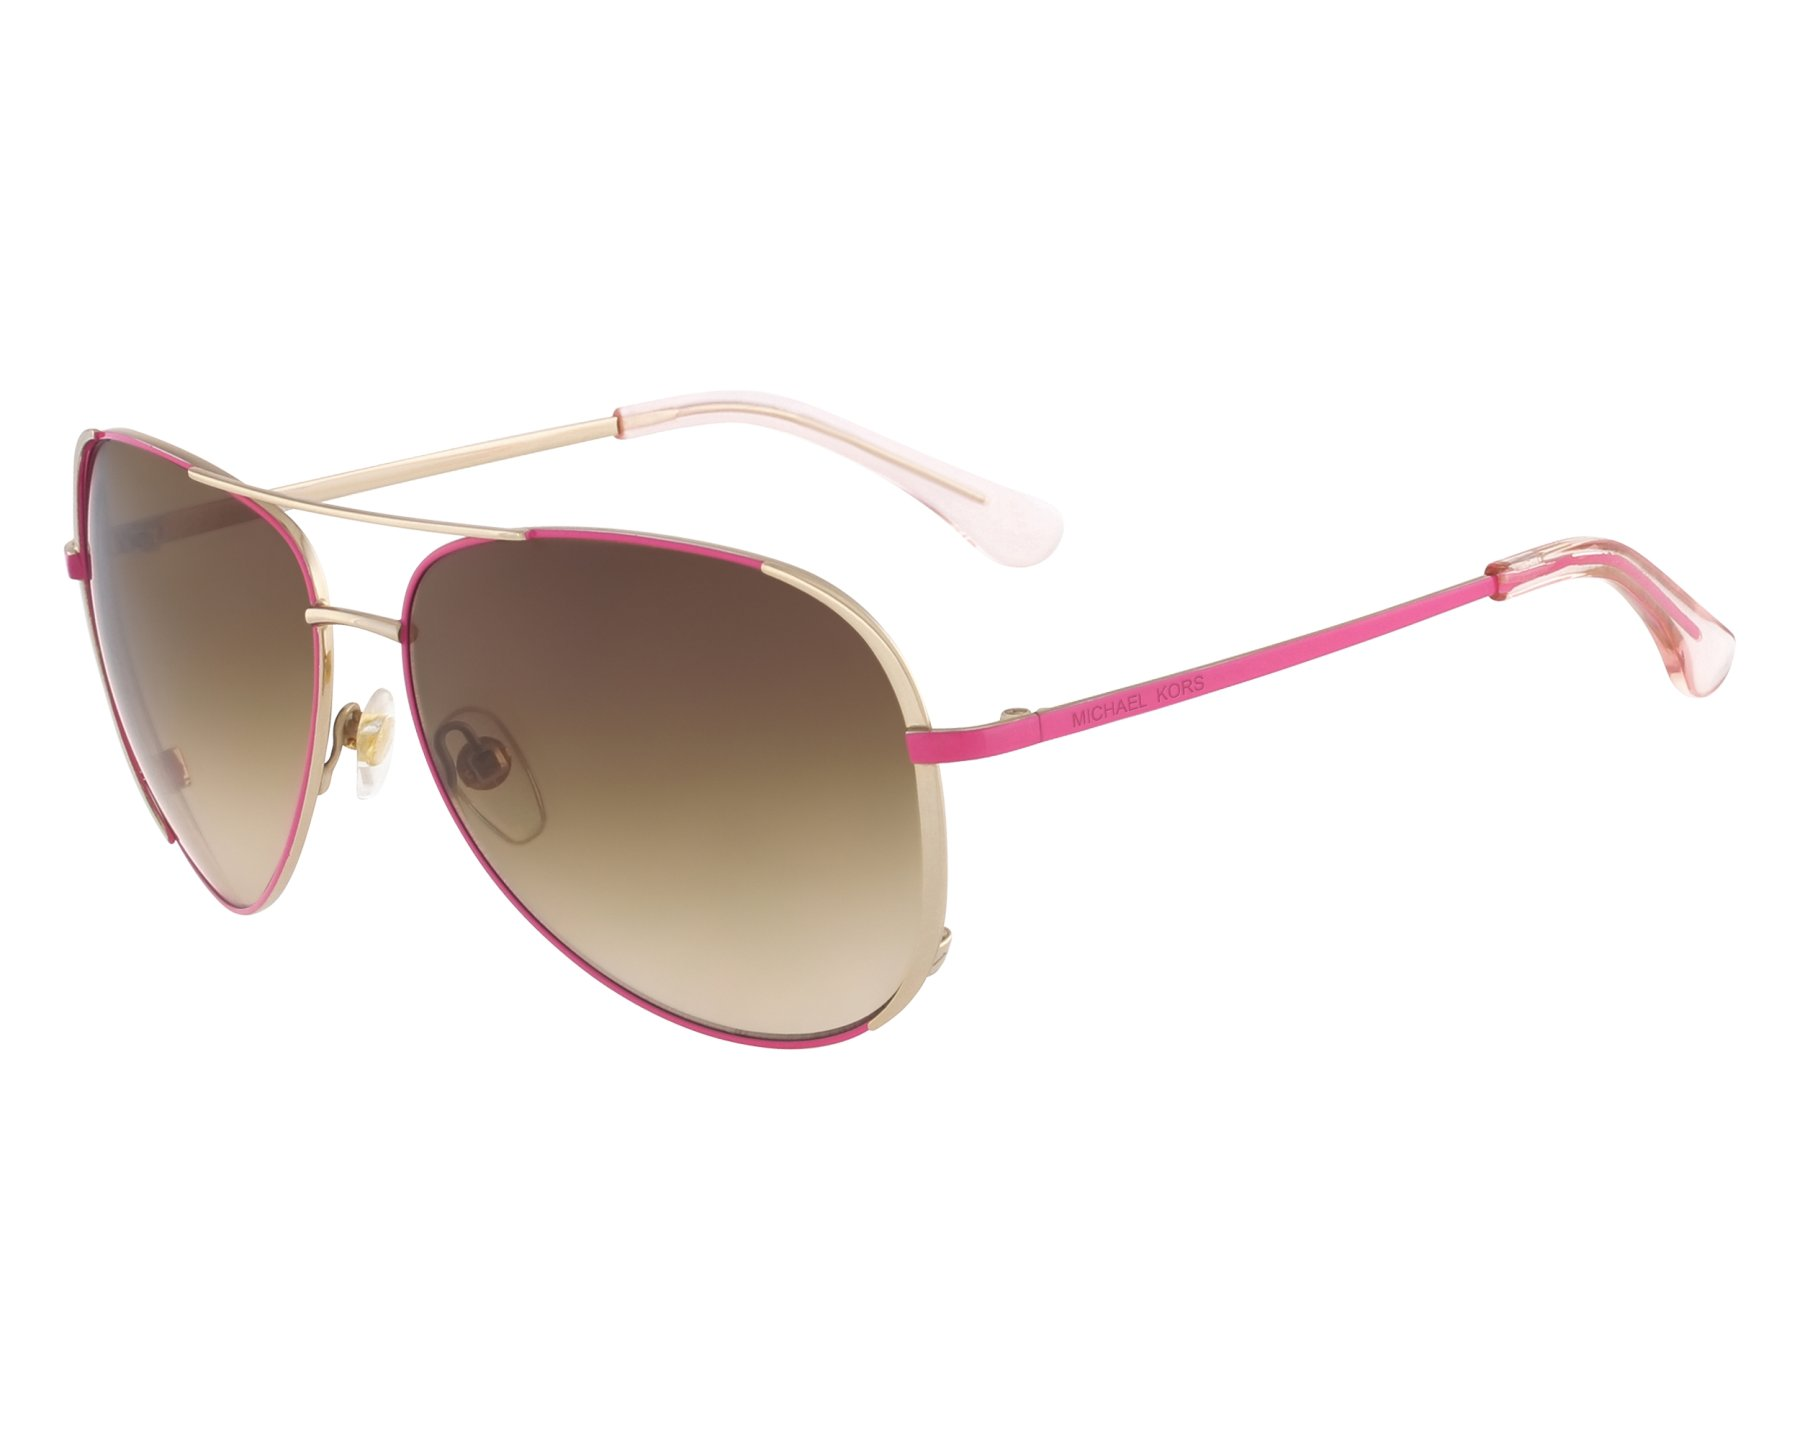 e4a5cda87161 Sunglasses Michael Kors M-2045-S 628 - Gold Pink front view